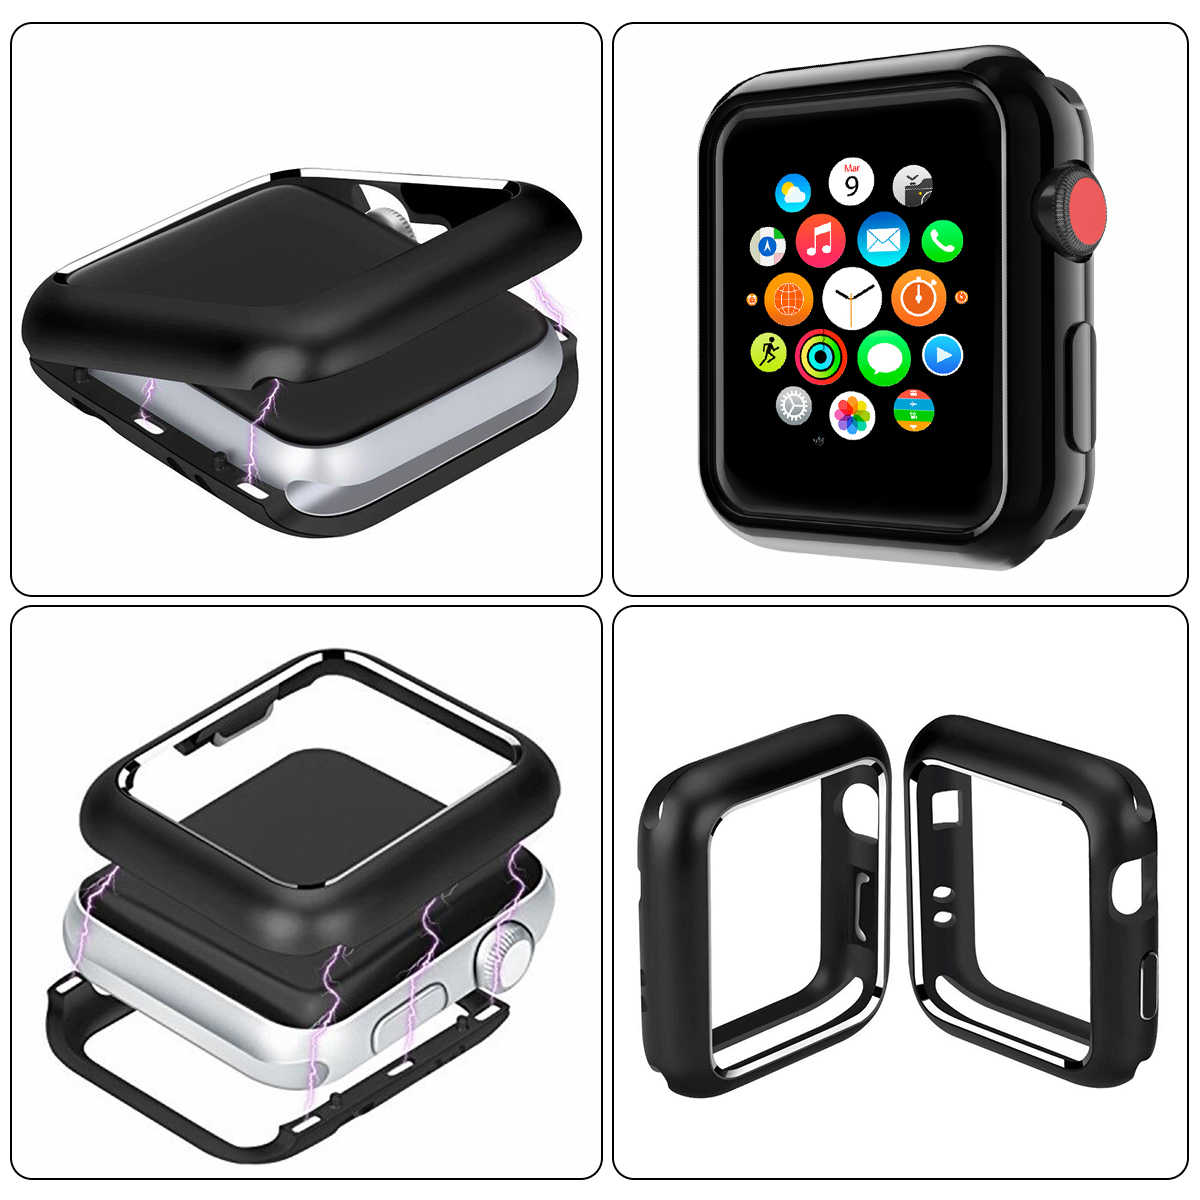 huge discount 4cb3a 169f2 Magnetic Adsorption Bumper Case for Apple Watch Series 4 3 2 1 38 42 40 44  mm Universal Aluminum Frame Magnet Watch Cover Bumper